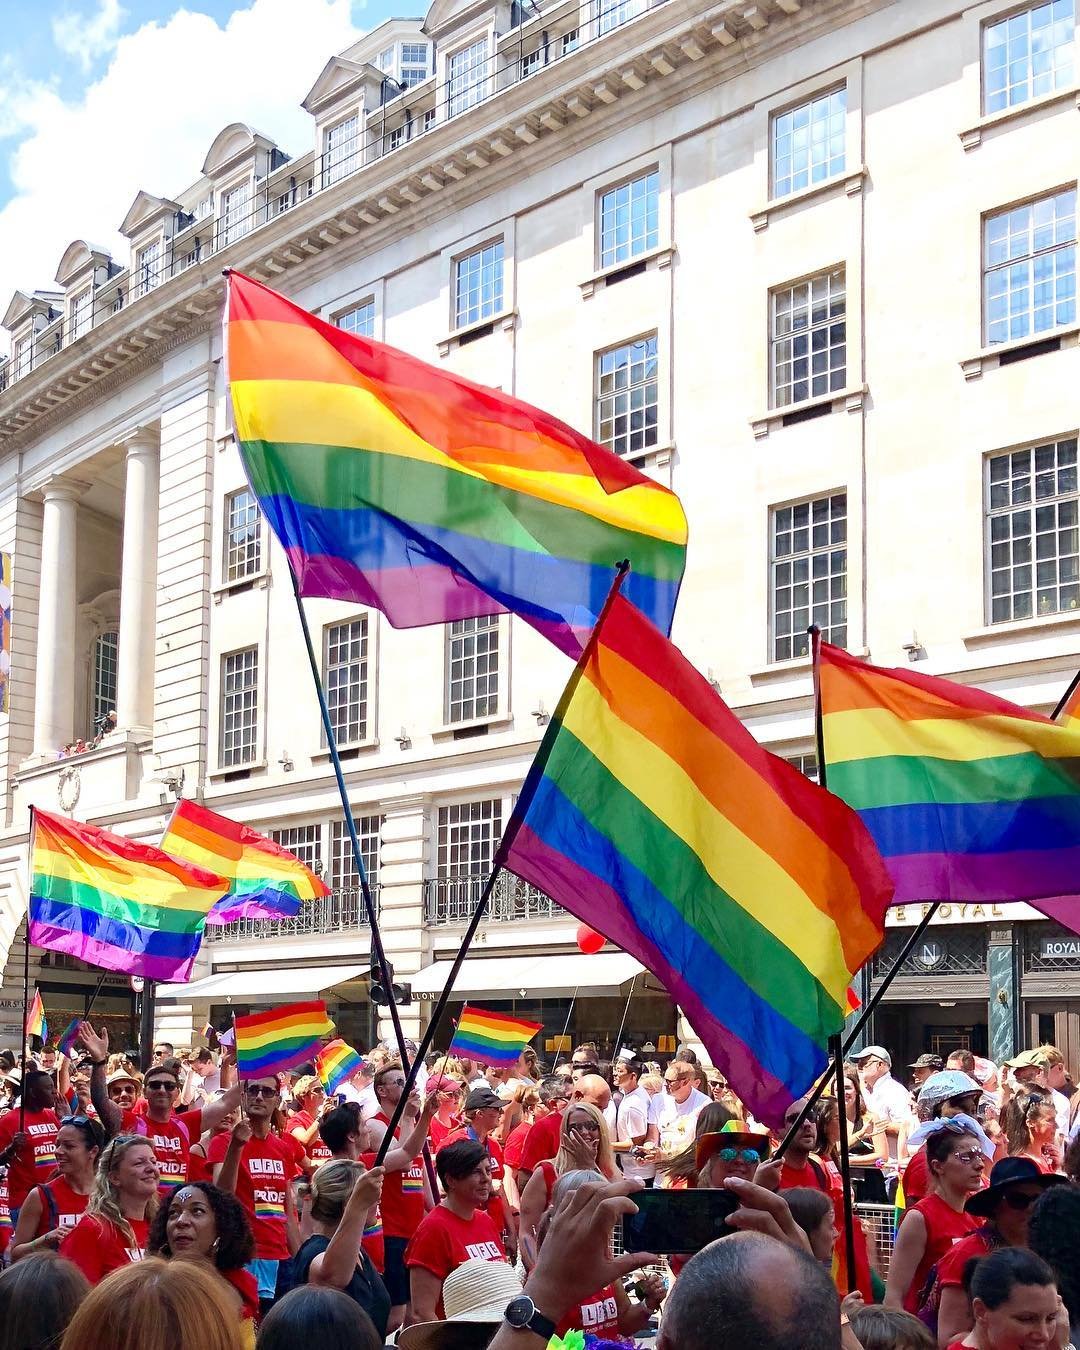 London Pride Parade Photo